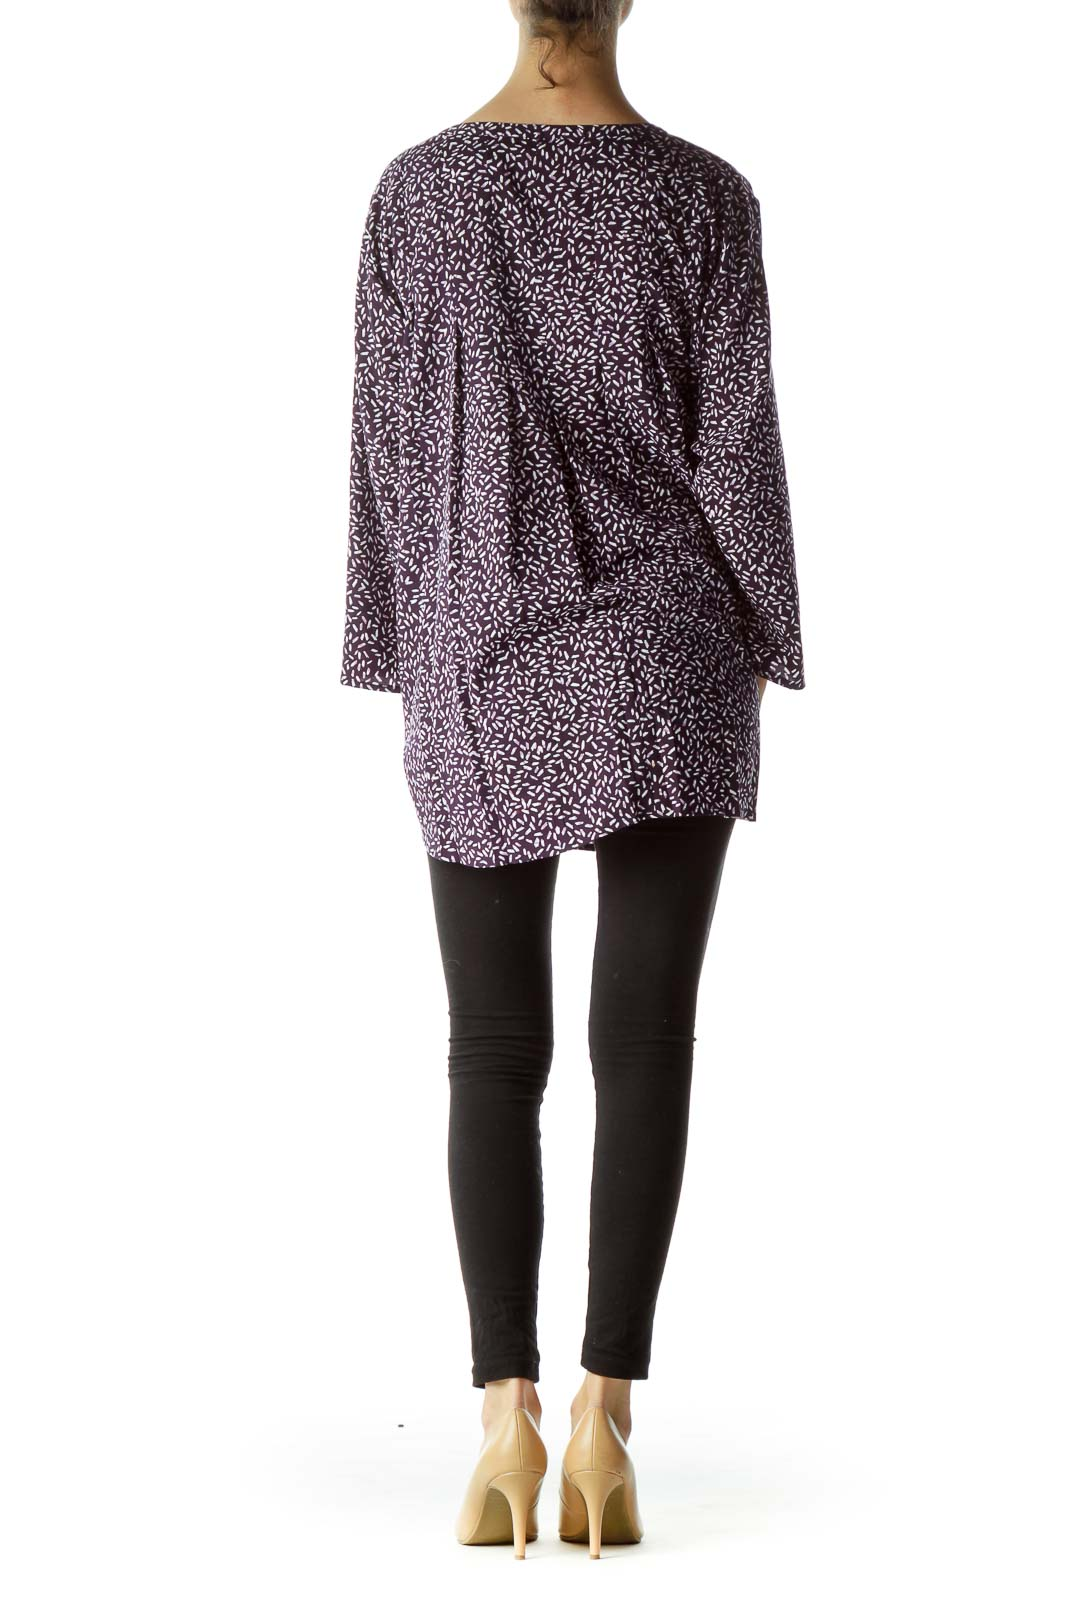 Purple Print 3/4 Sleeve Front Pleated Blouse